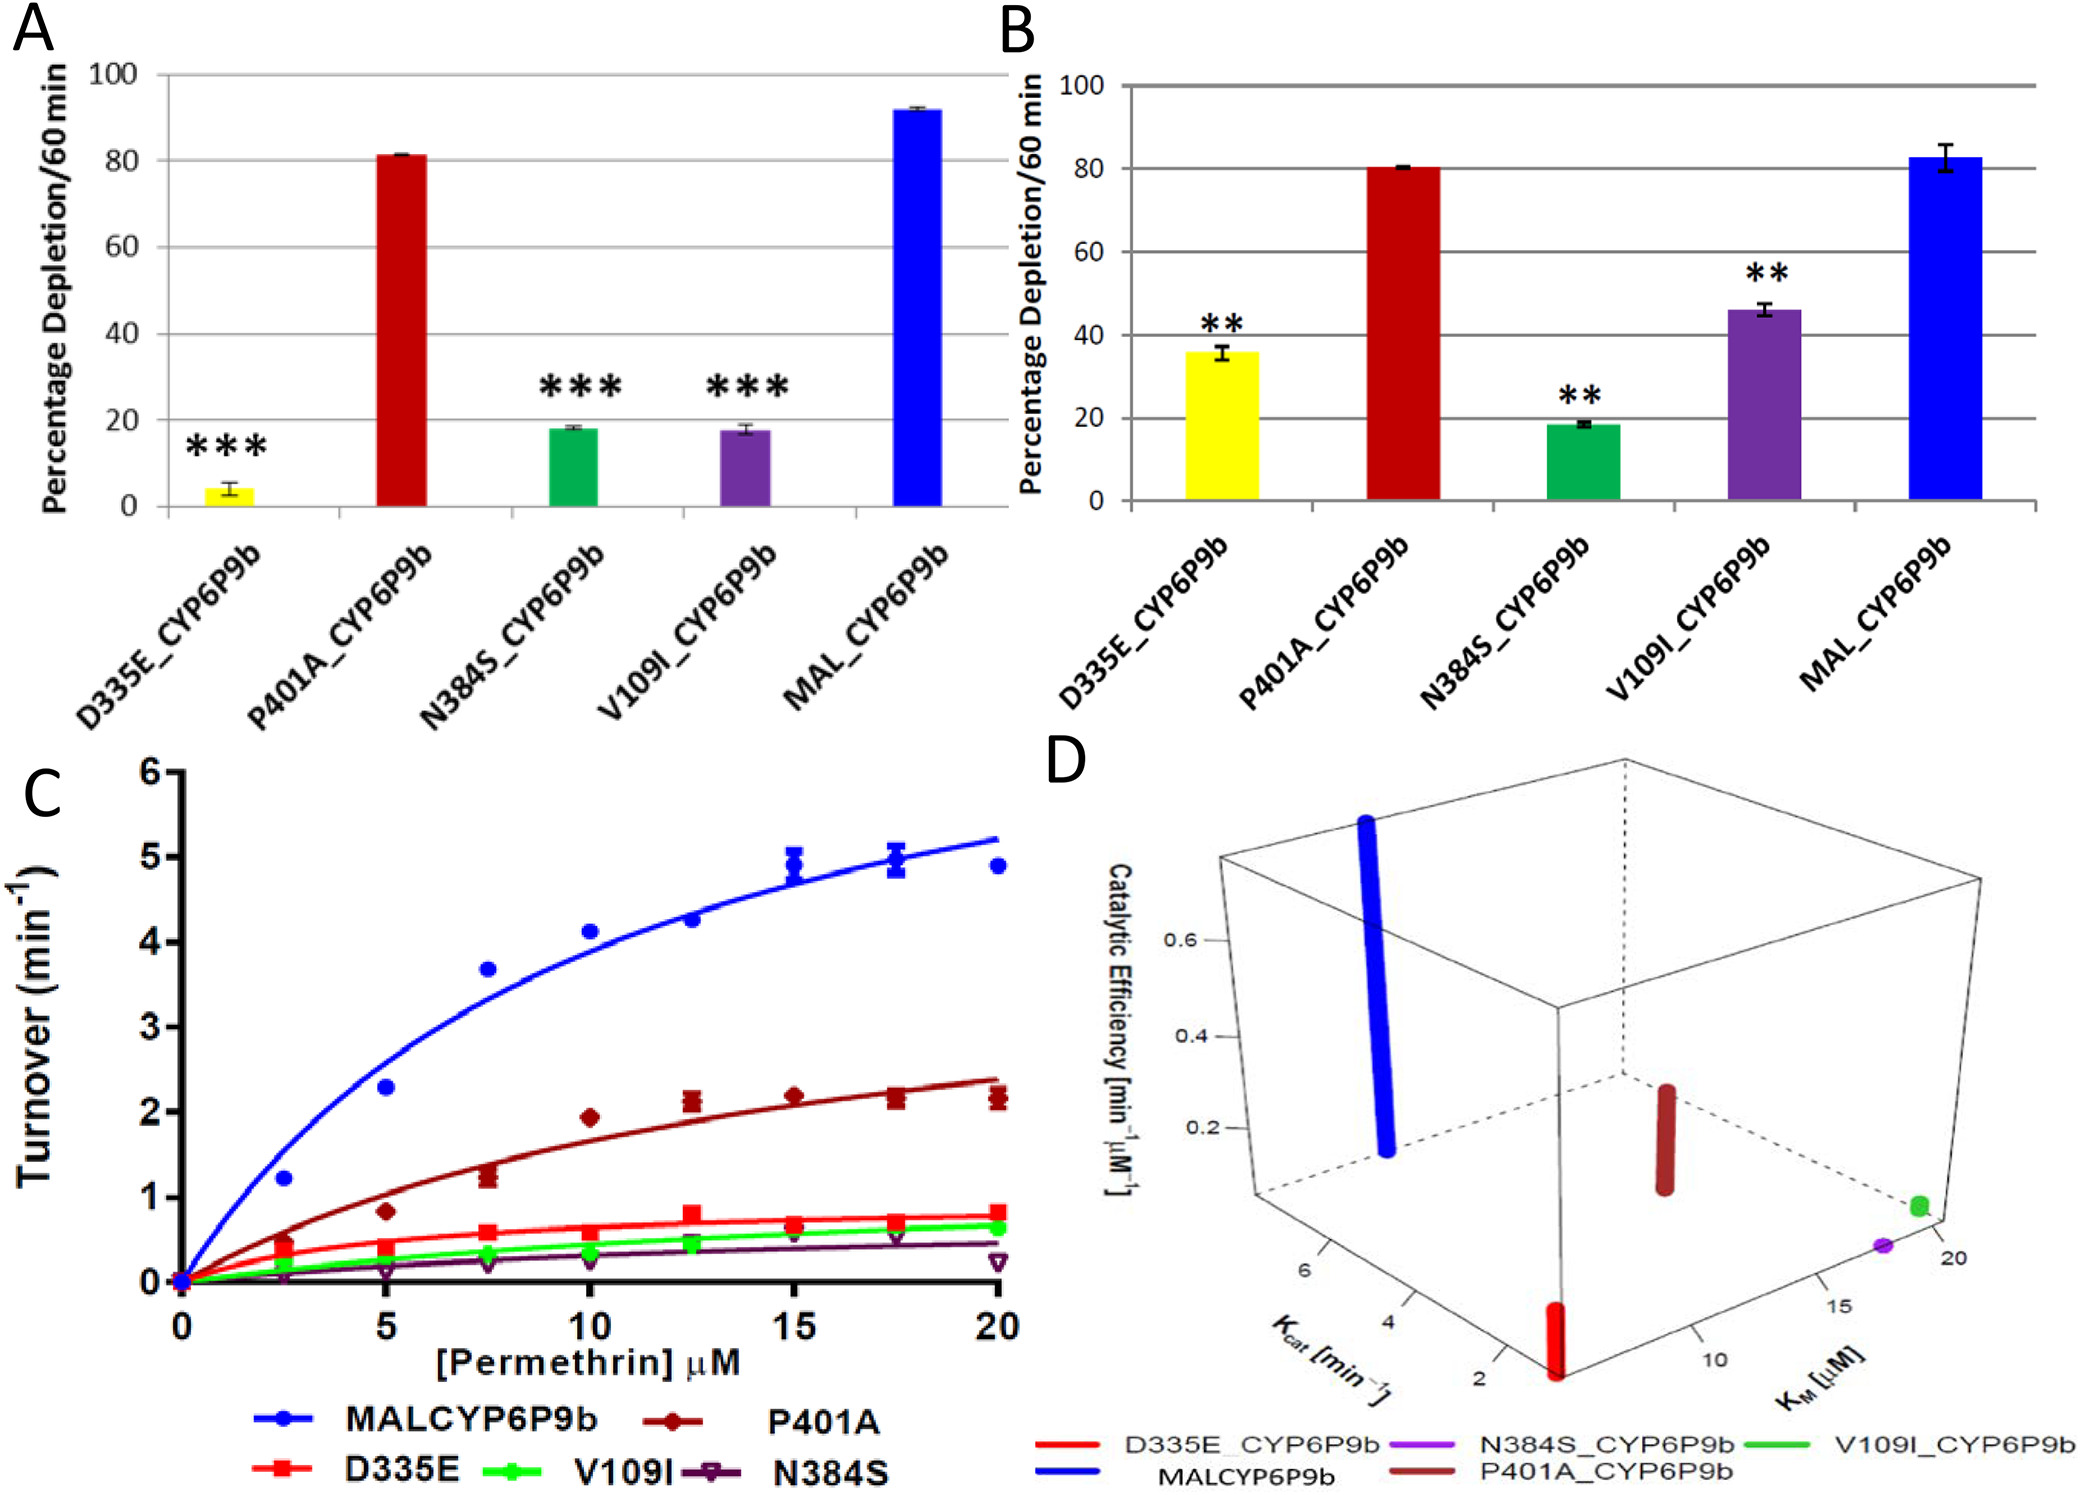 Substrate depletion and kinetic profiles of mutant CYP6P9b recombinant proteins.